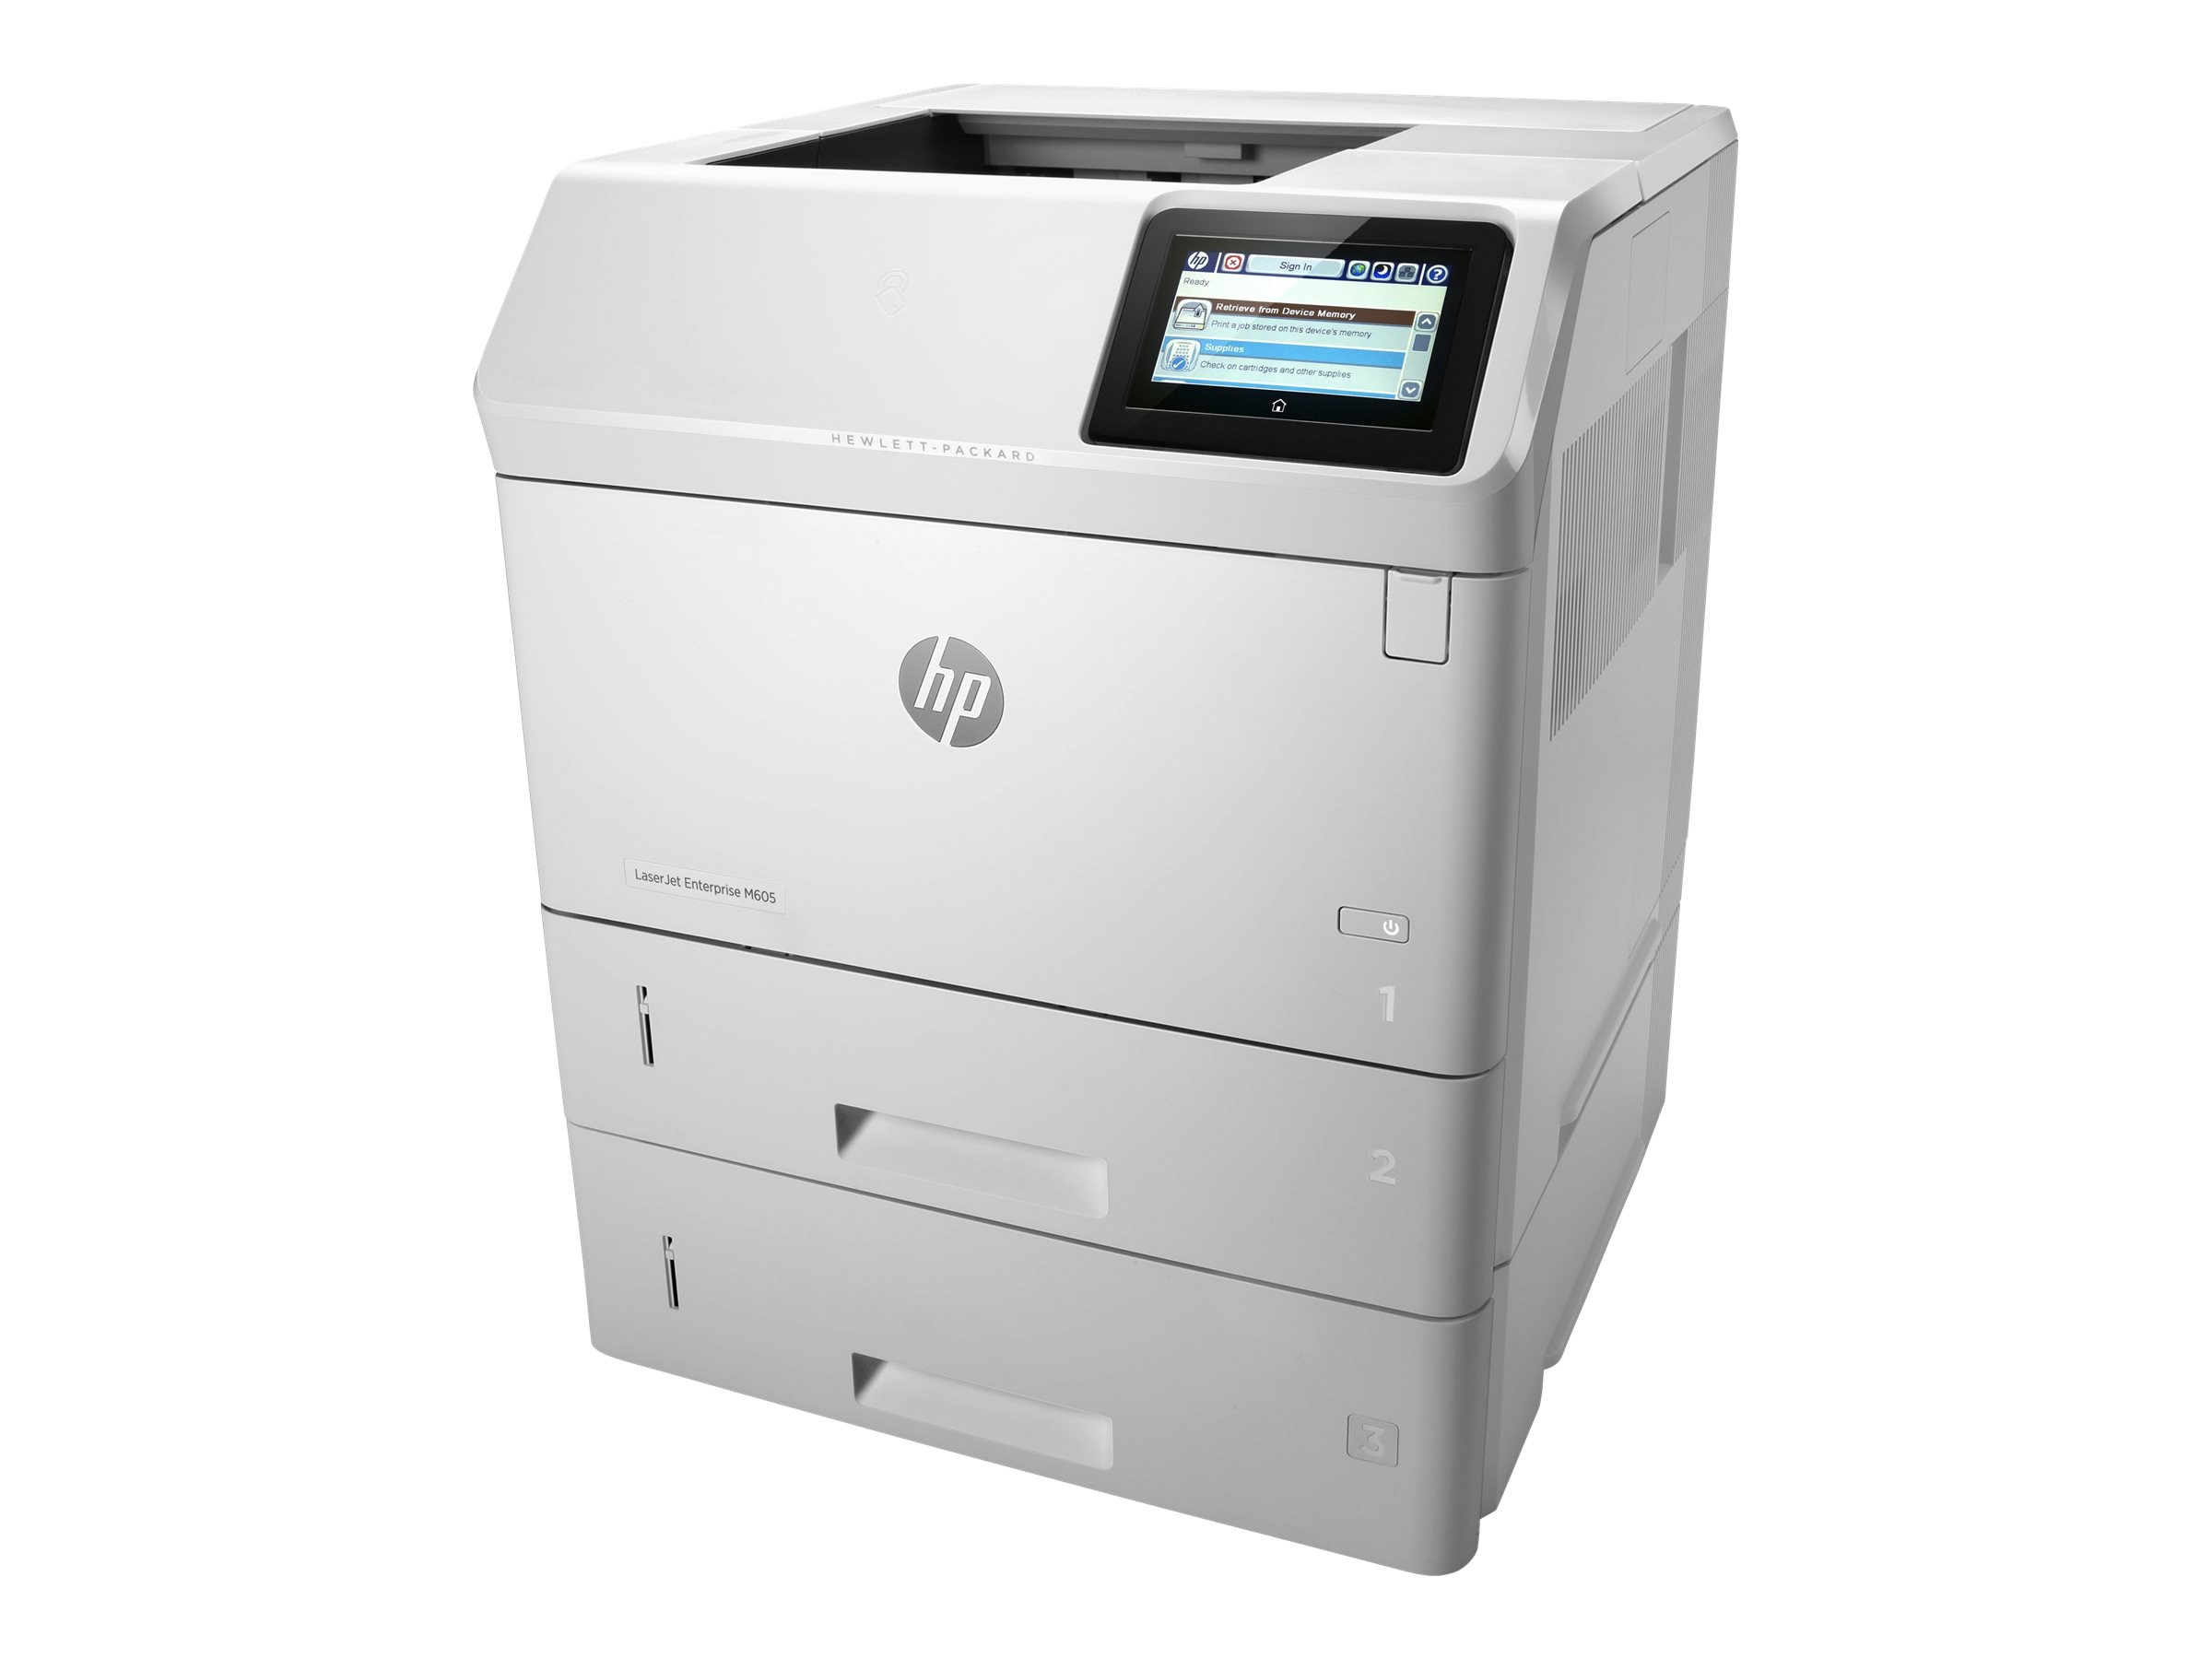 HP LaserJet Enterprise Managed M605xm Printer, L3U54A#BGJ, 21481747, Printers - Laser & LED (monochrome)